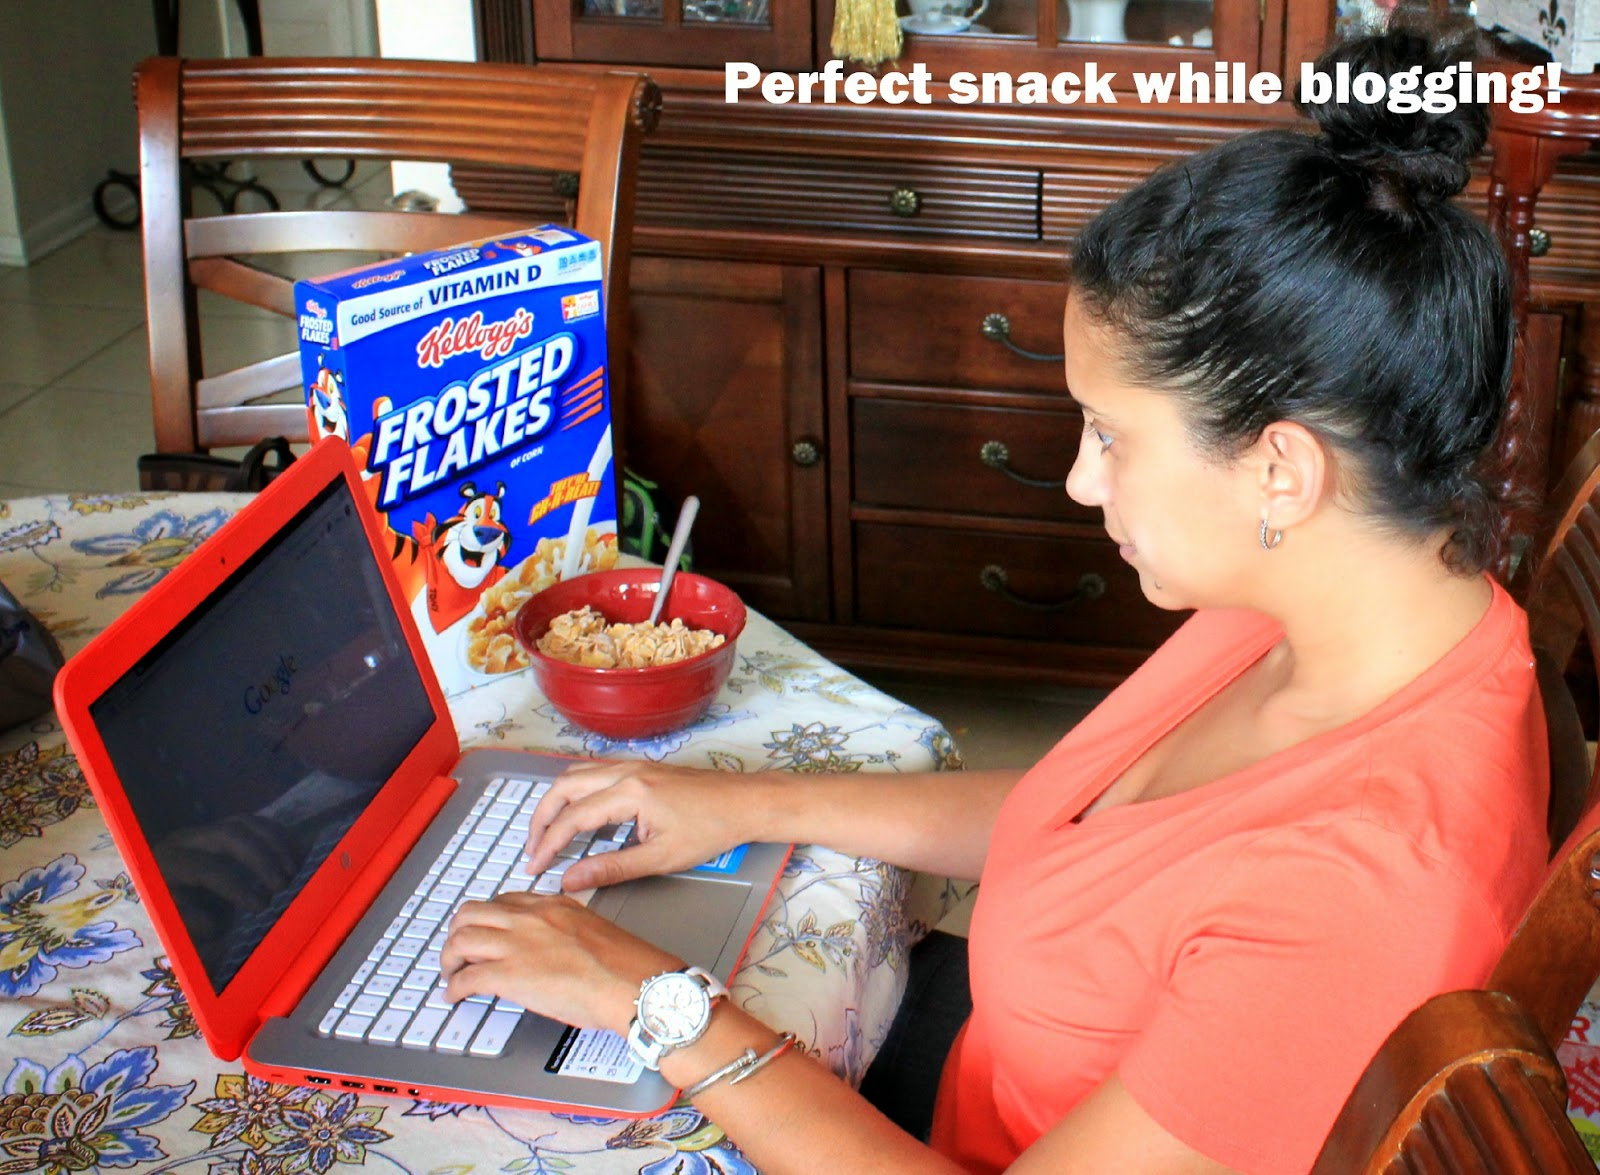 Cereal is the perfect snack while blogging! #goodnightsnack #shop